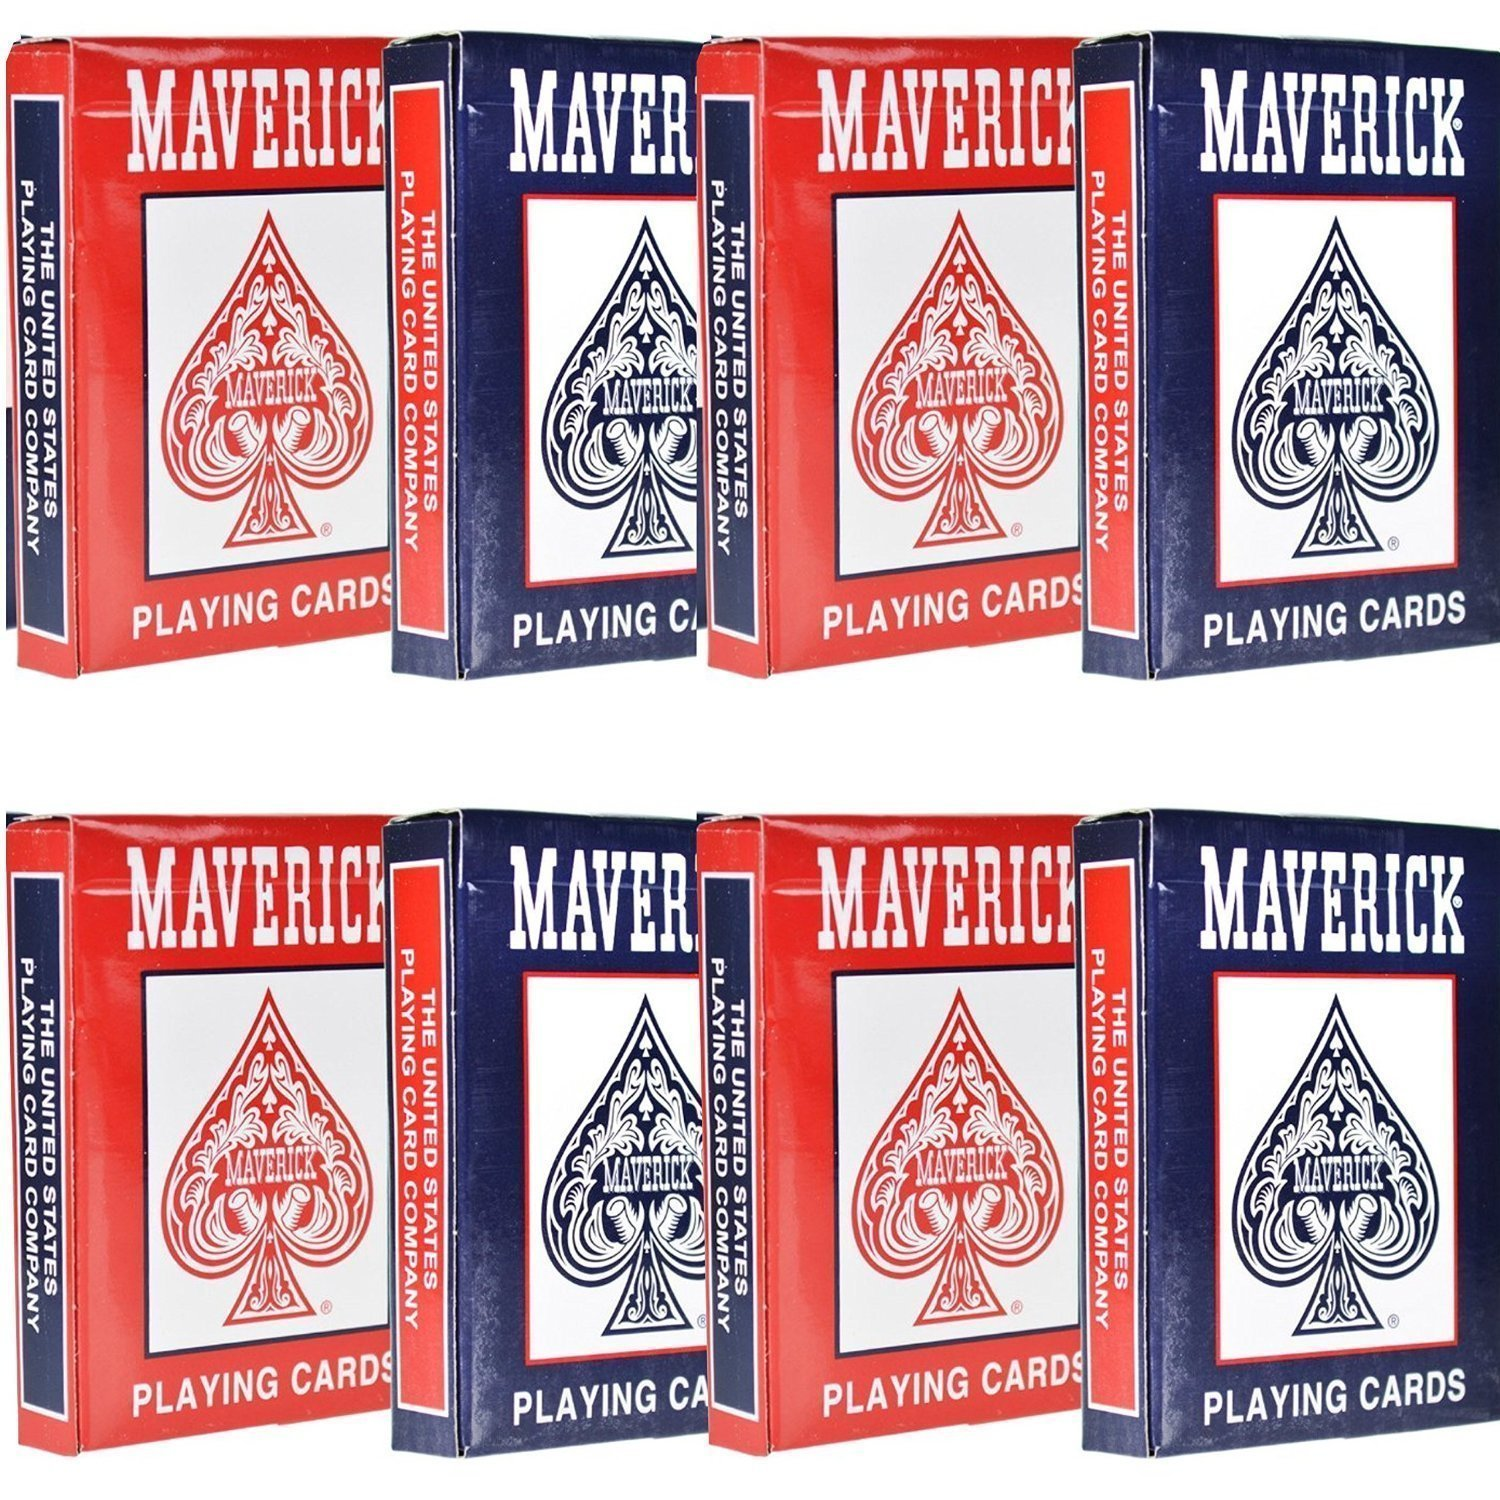 Amazon.com: Maverick 8 Decks of Playing Cards: Sports & Outdoors